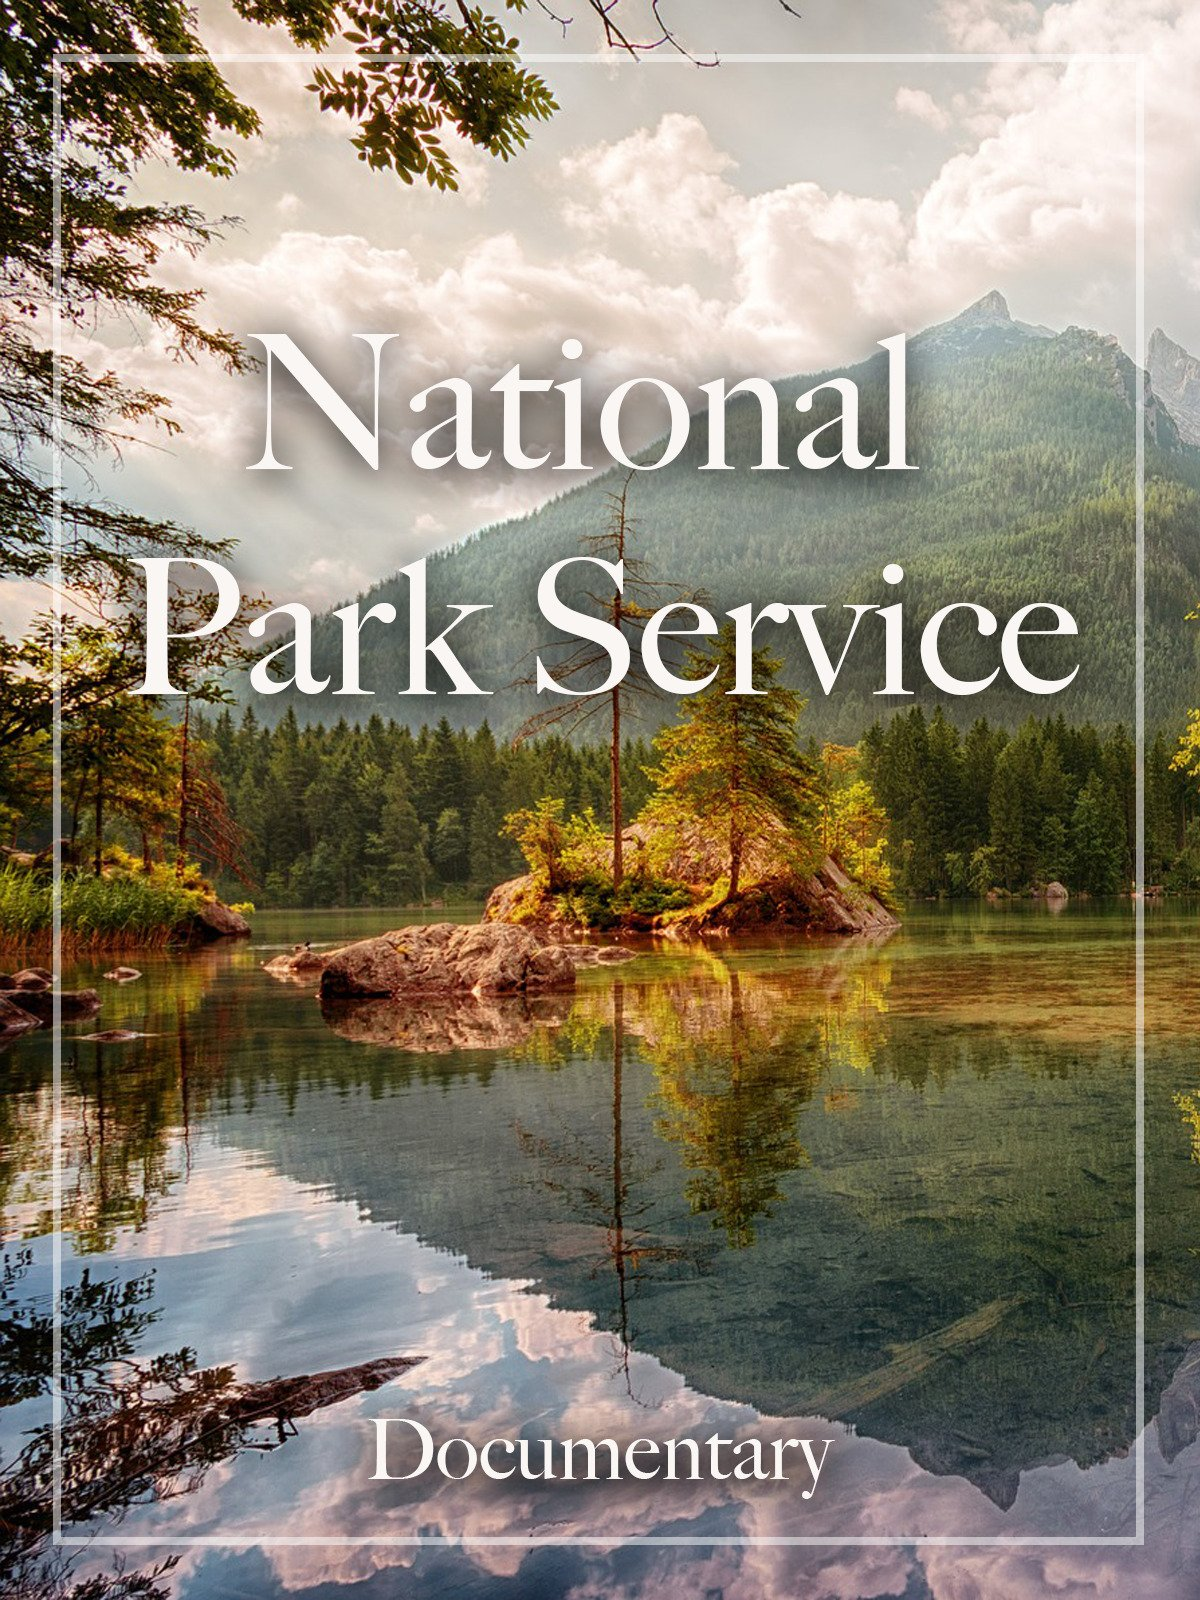 National Park Service Documentary